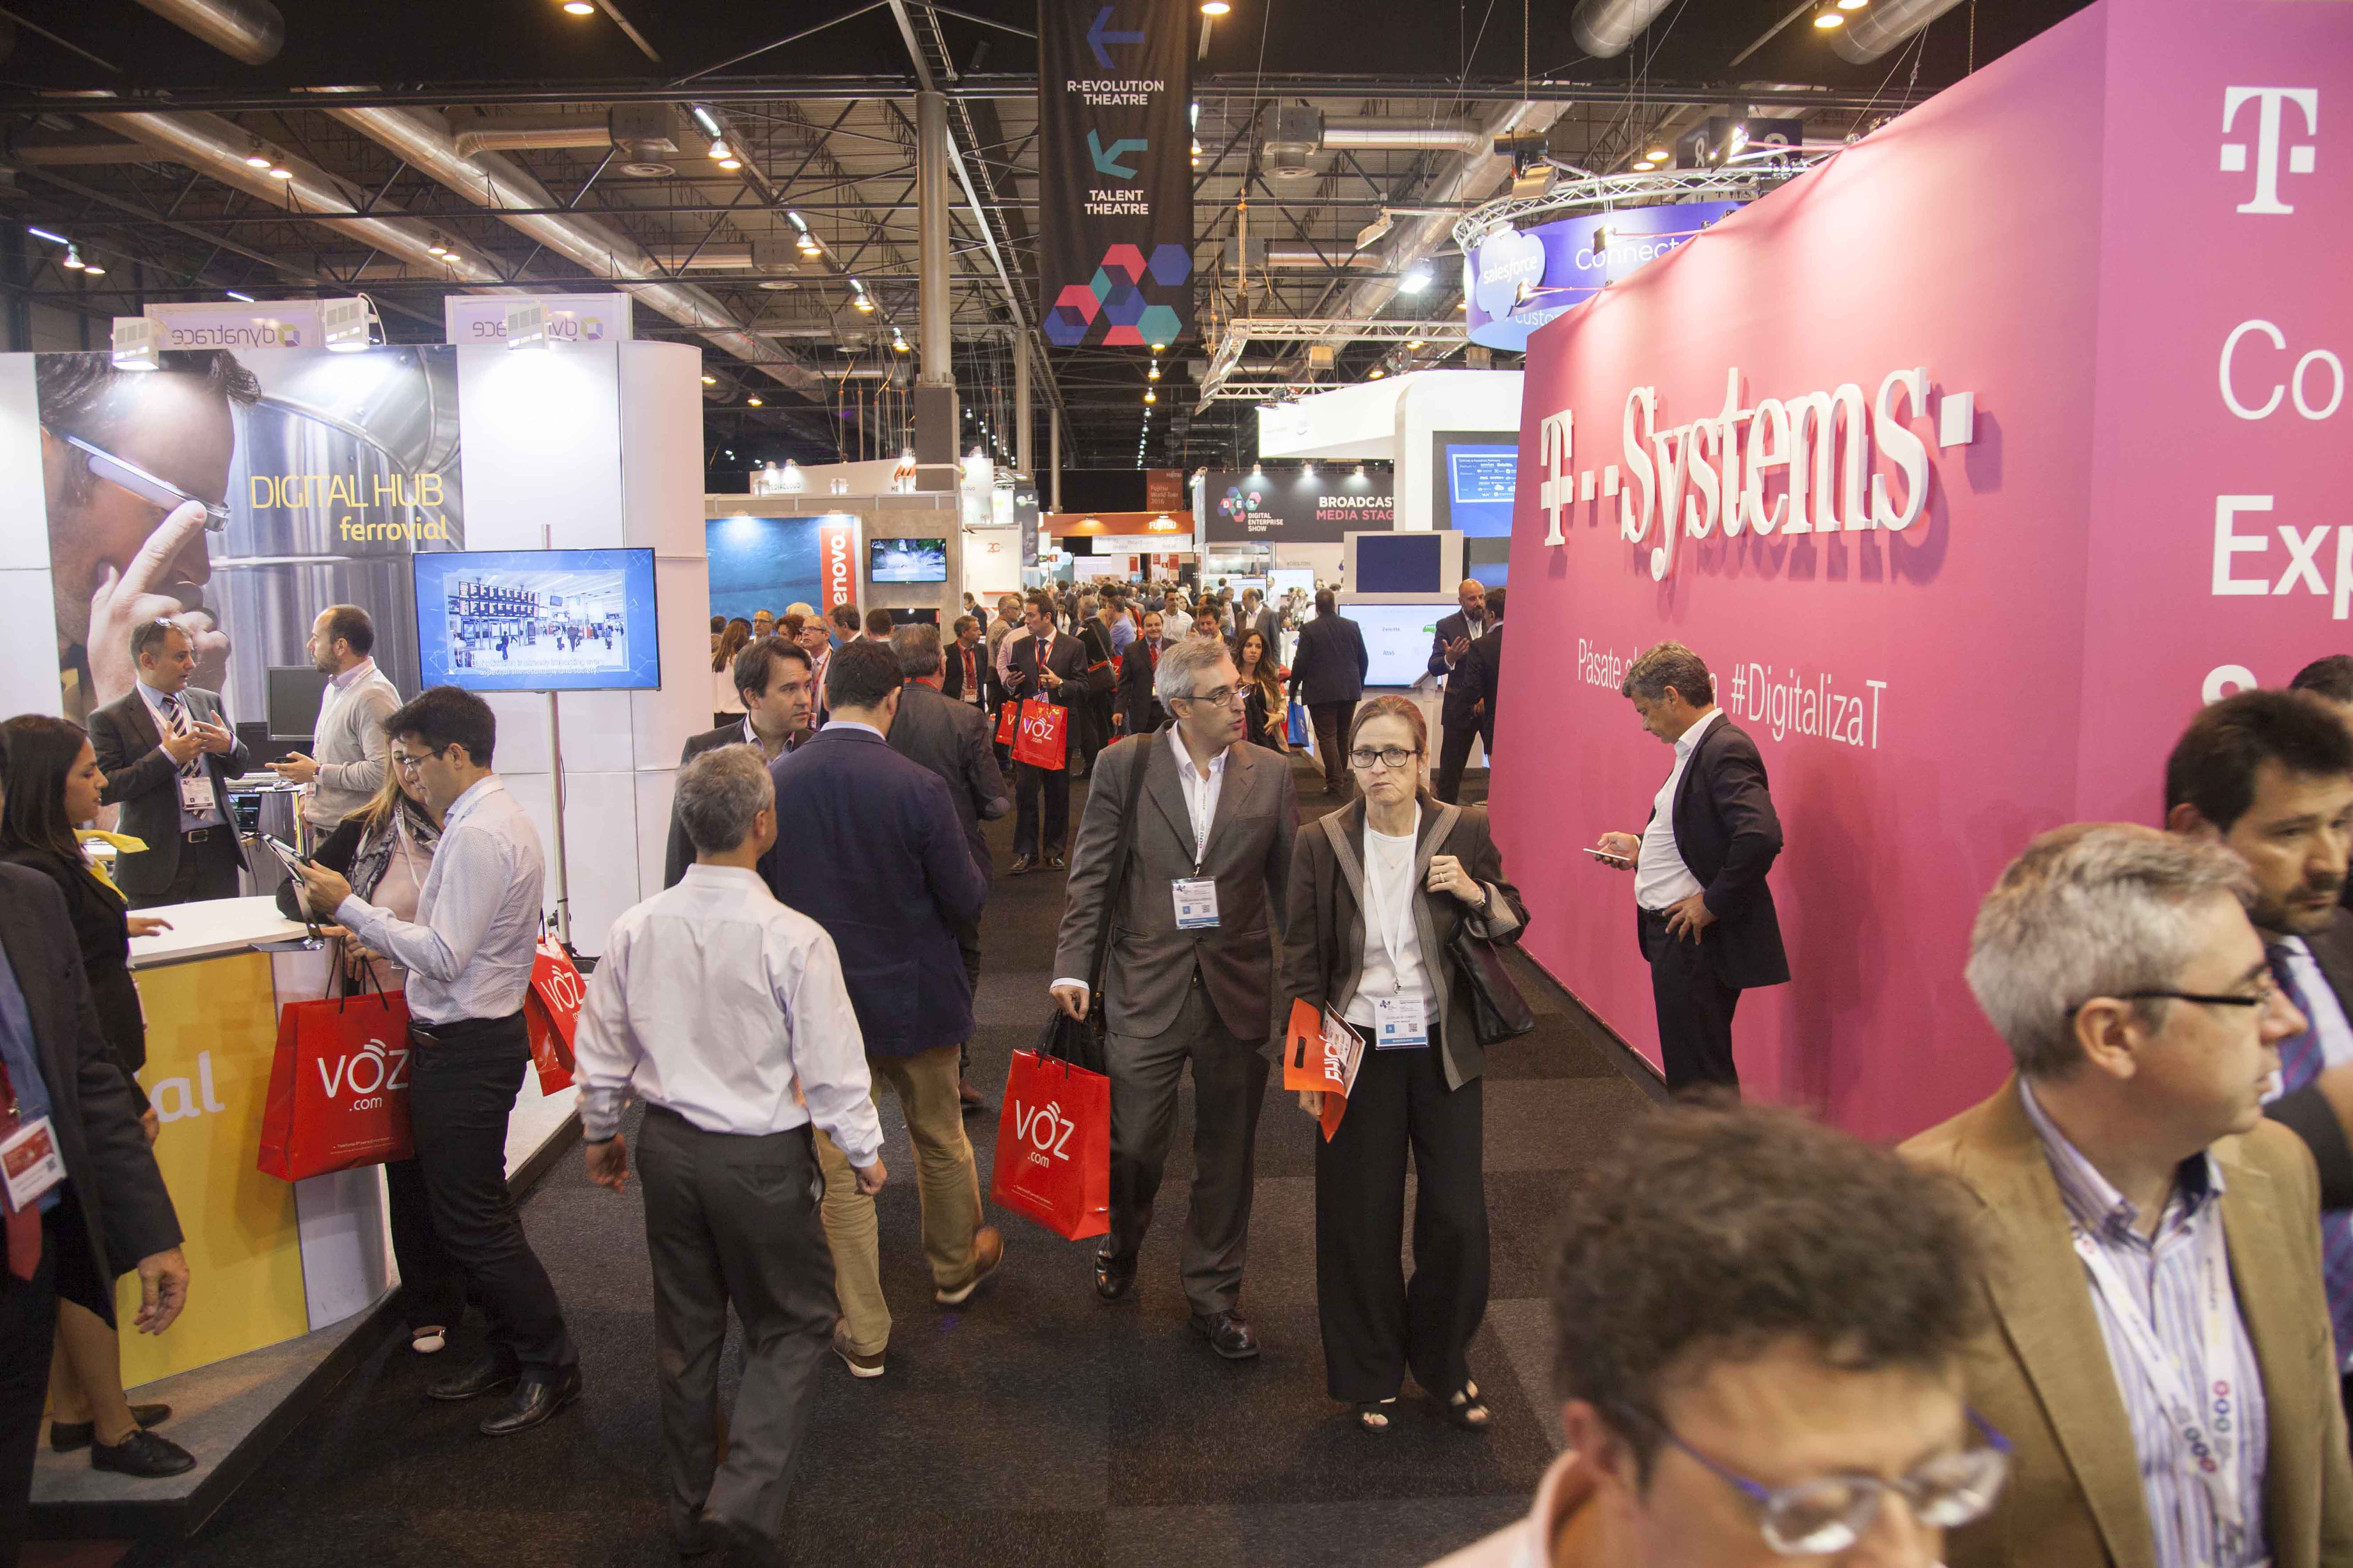 The second day of the event DES2016 combines the Masterminds Congress Program along with two Industry Programs: Fujitsu World Tour and Salesforce Essentials